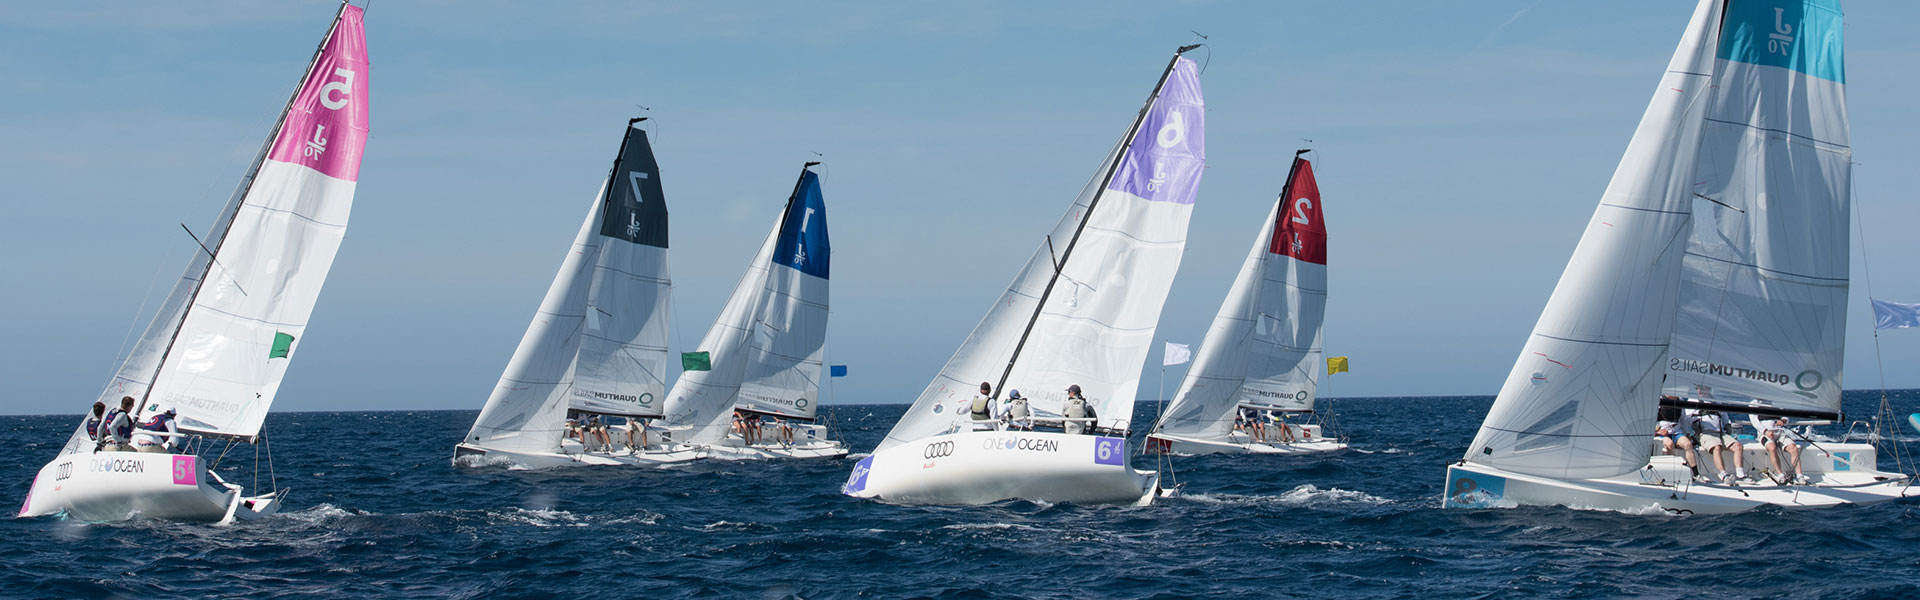 YCCS Global Team Racing Regatta - Porto Cervo 2020